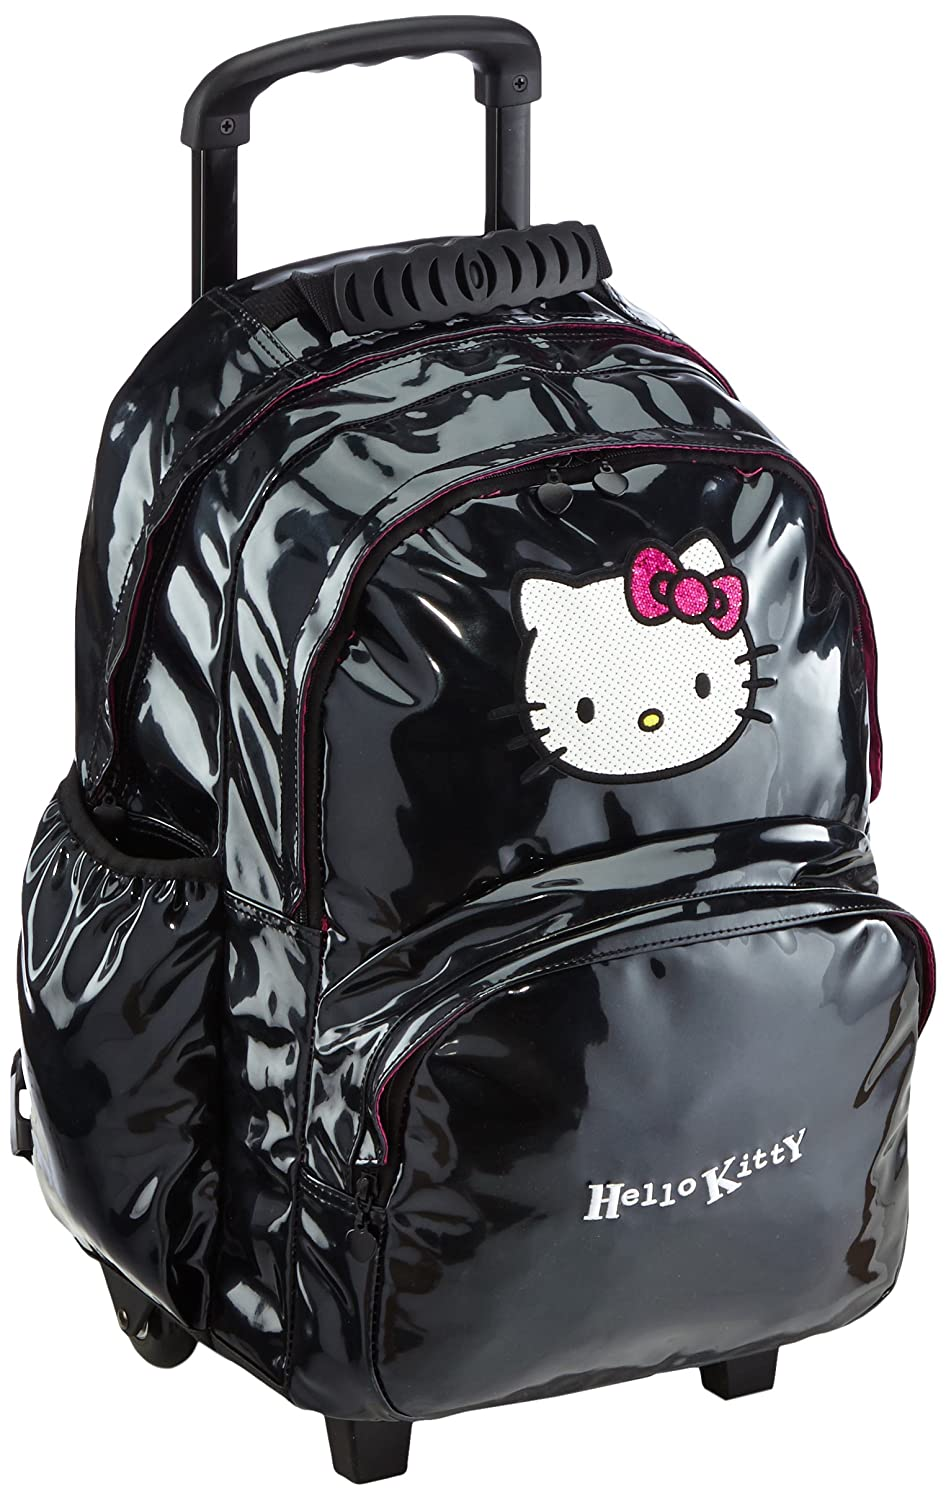 Hello Kitty Sac Classic Dots Sac A Dos 2 Compartiments Trolley Hello Kitty Solde fdPJBIMqo5